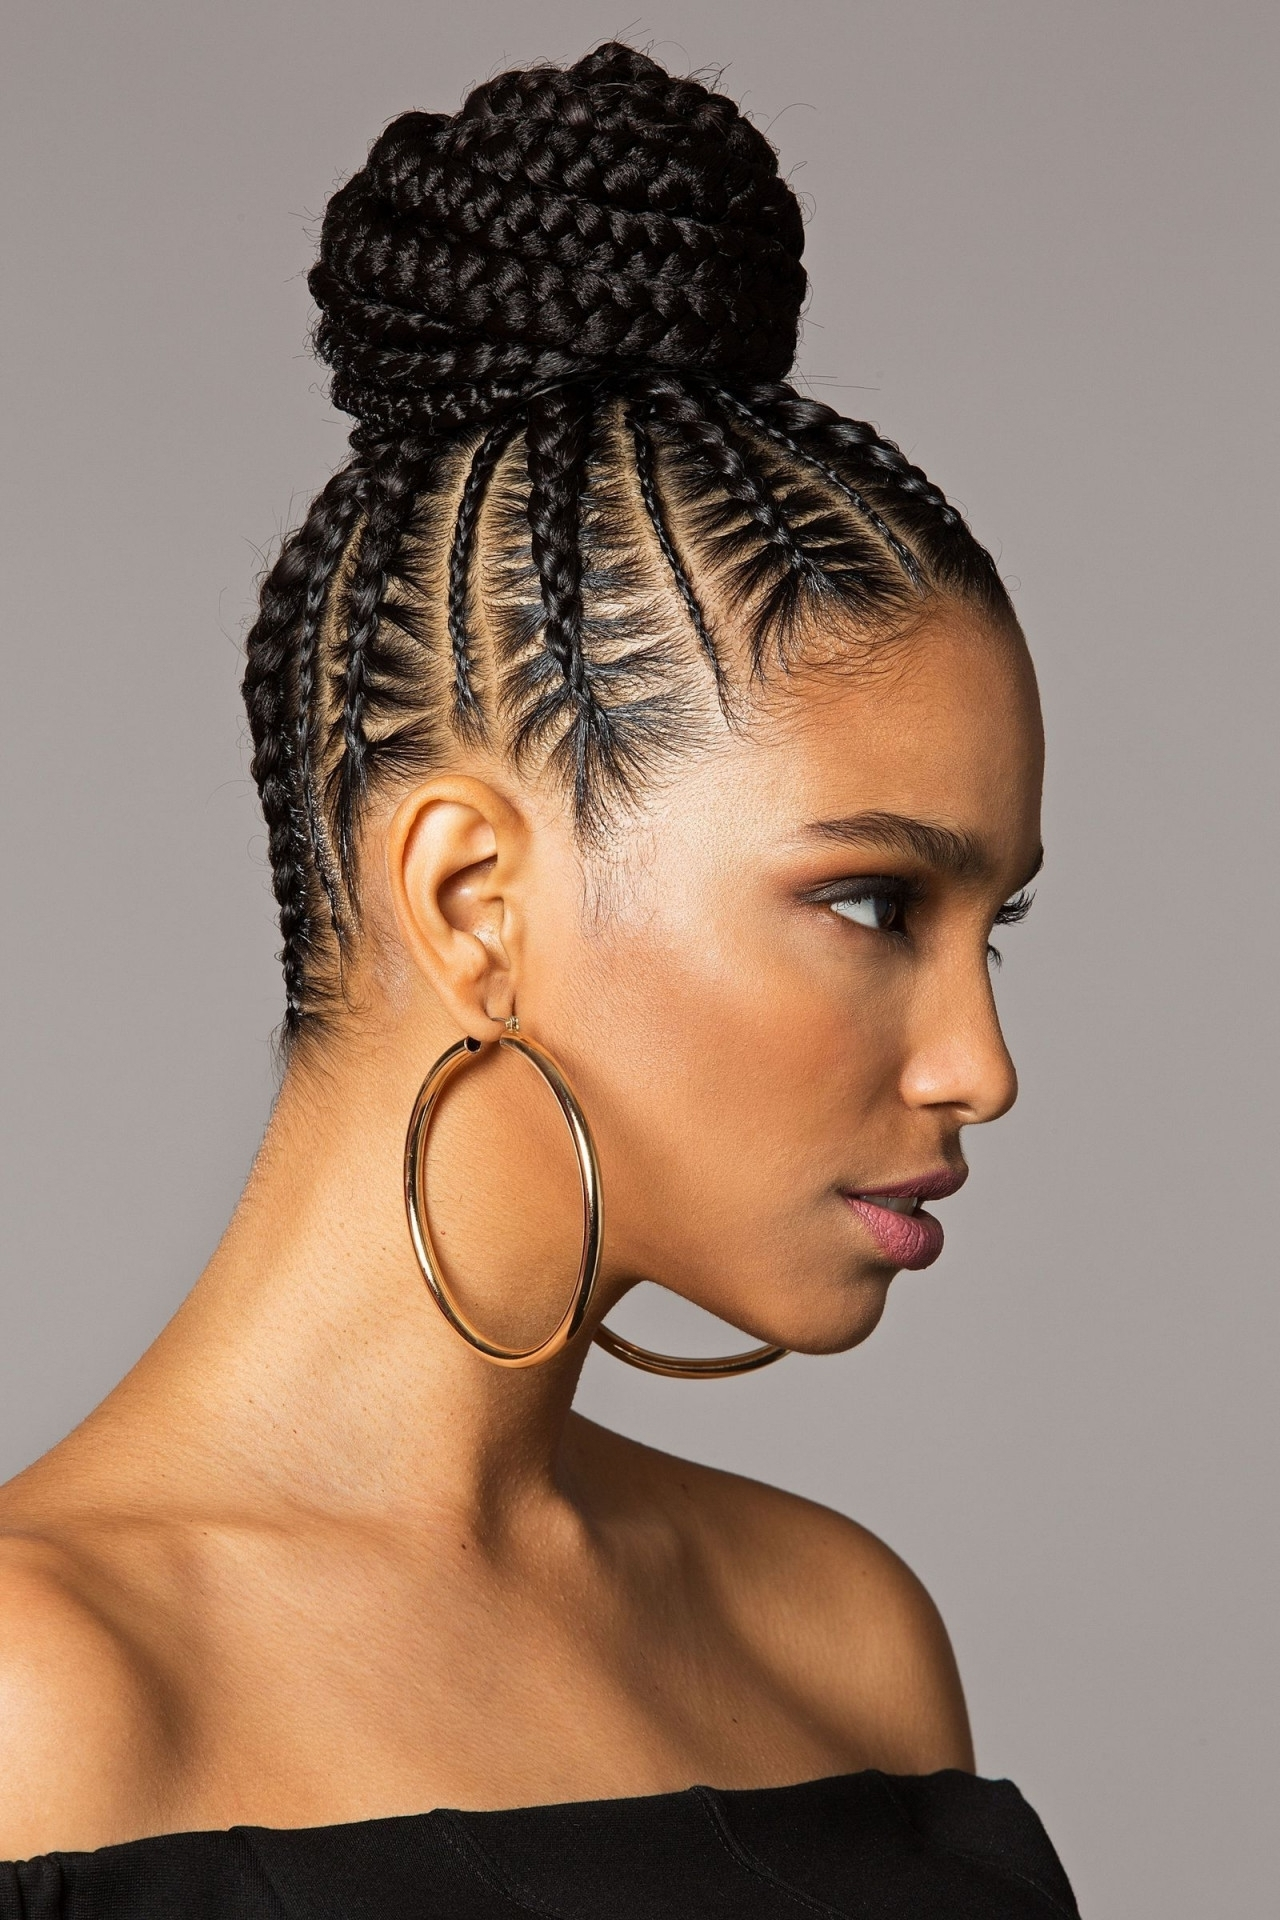 2018 Cornrows Hairstyles With Bangs Within Cornrows Updo Hairstyles With Bangs 2018 – Twelveminutemuse (View 11 of 15)